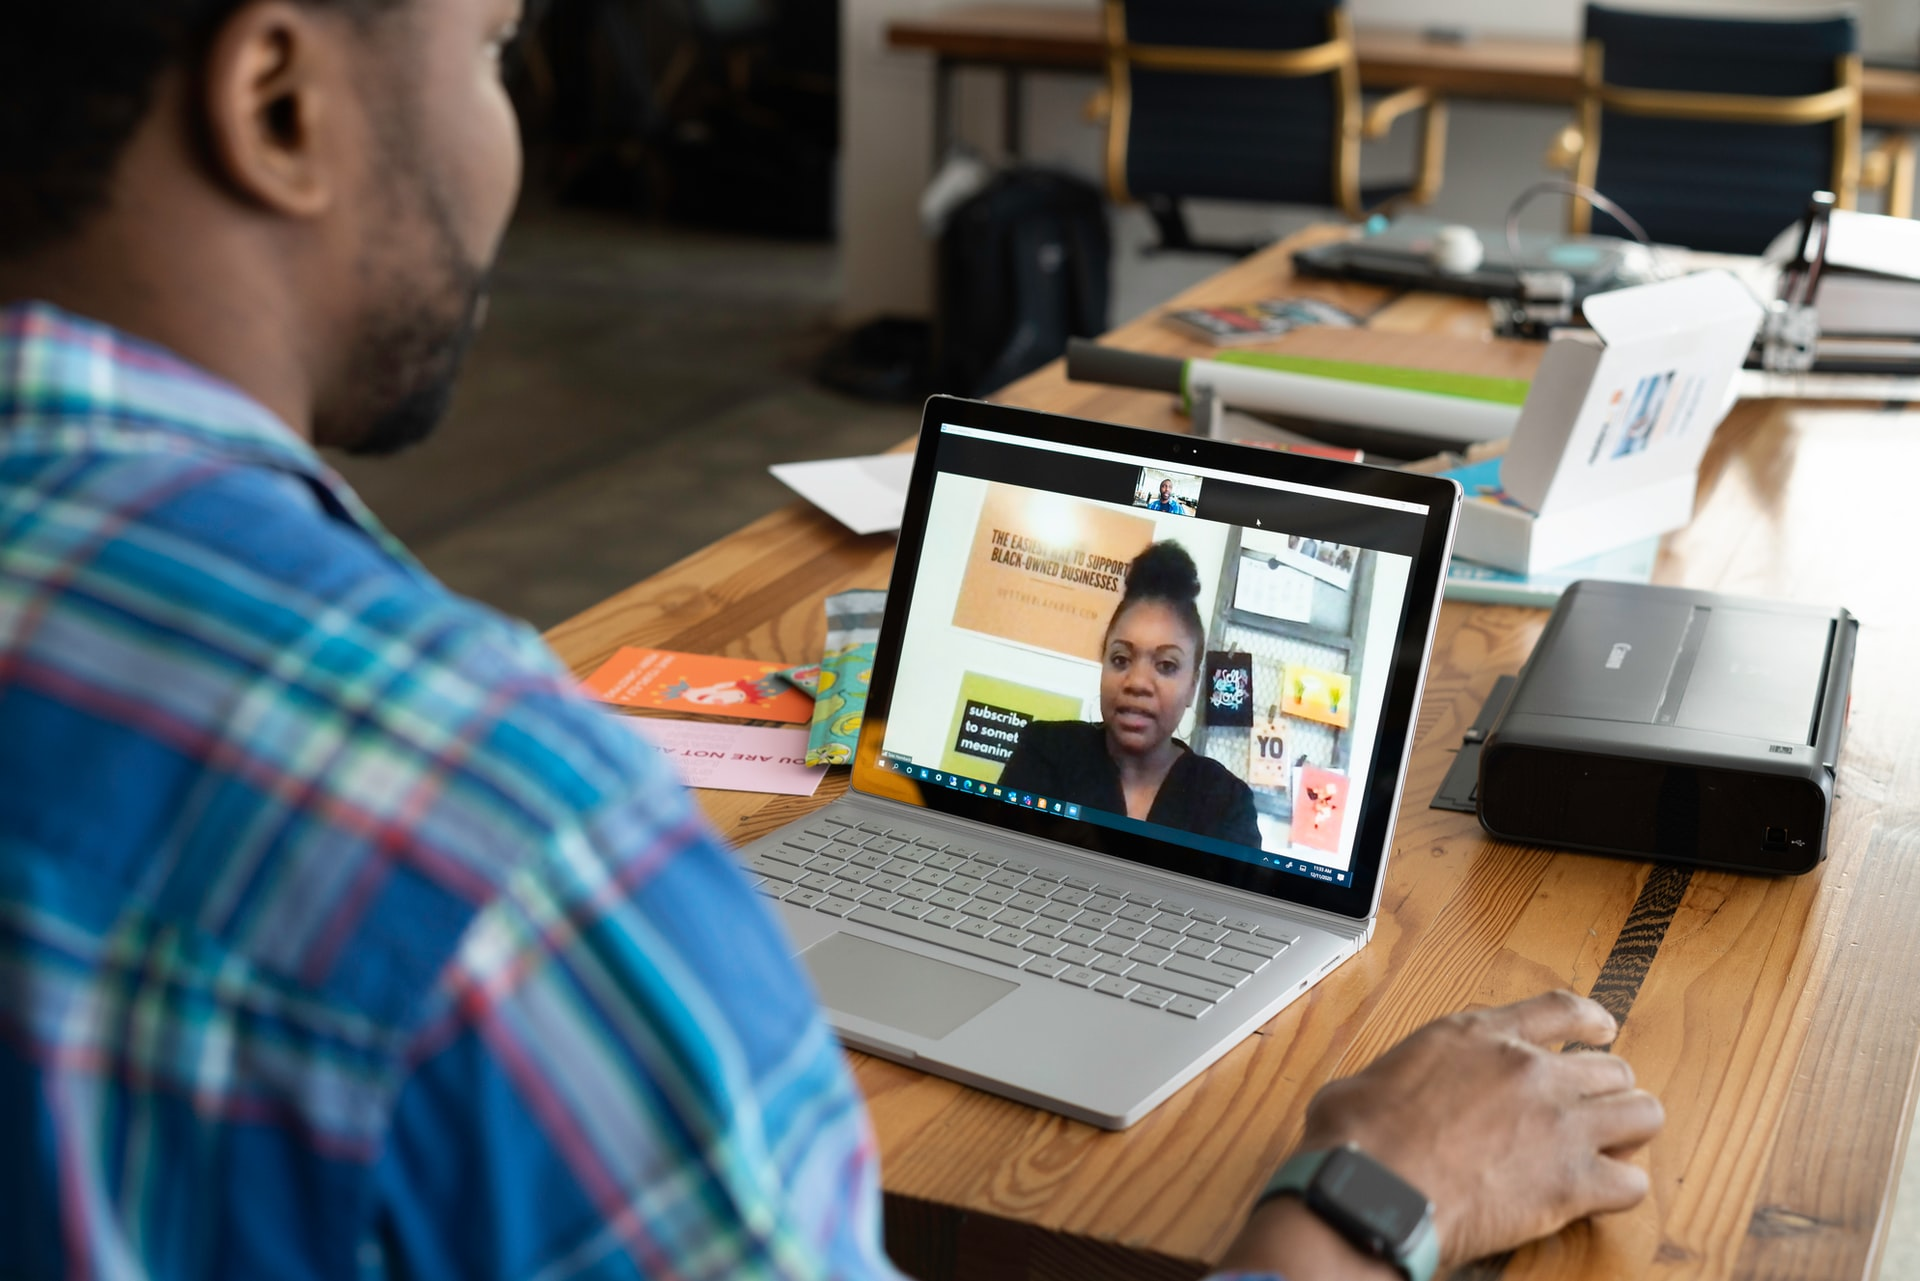 Top 8 Tips For Winning In Virtual Interviews